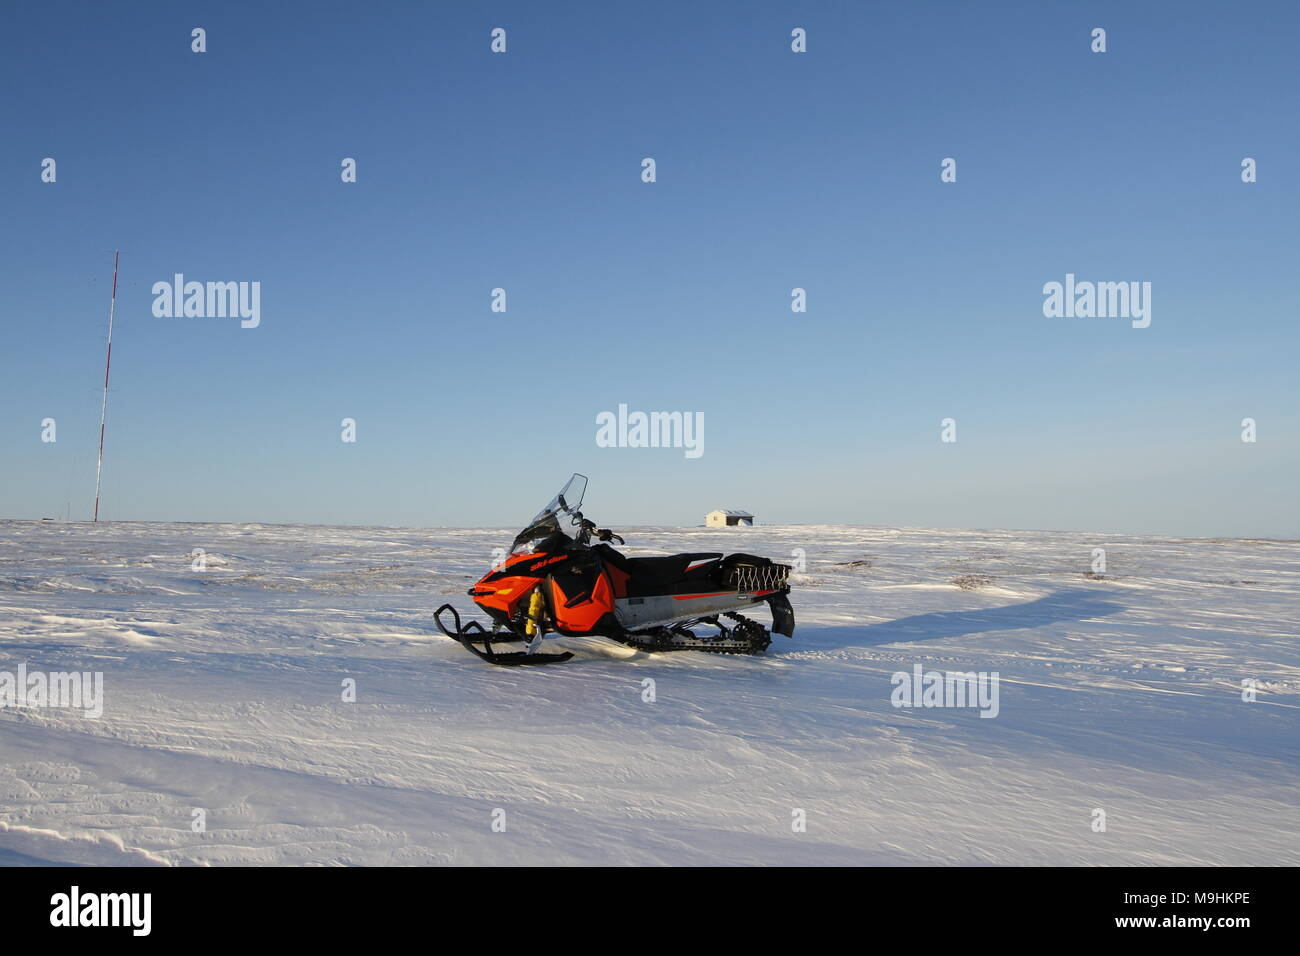 A red snow machine on a white winter arctic landscape with snow on the ground a blue endless sky, near Arviat Nunavut Canada - Stock Image